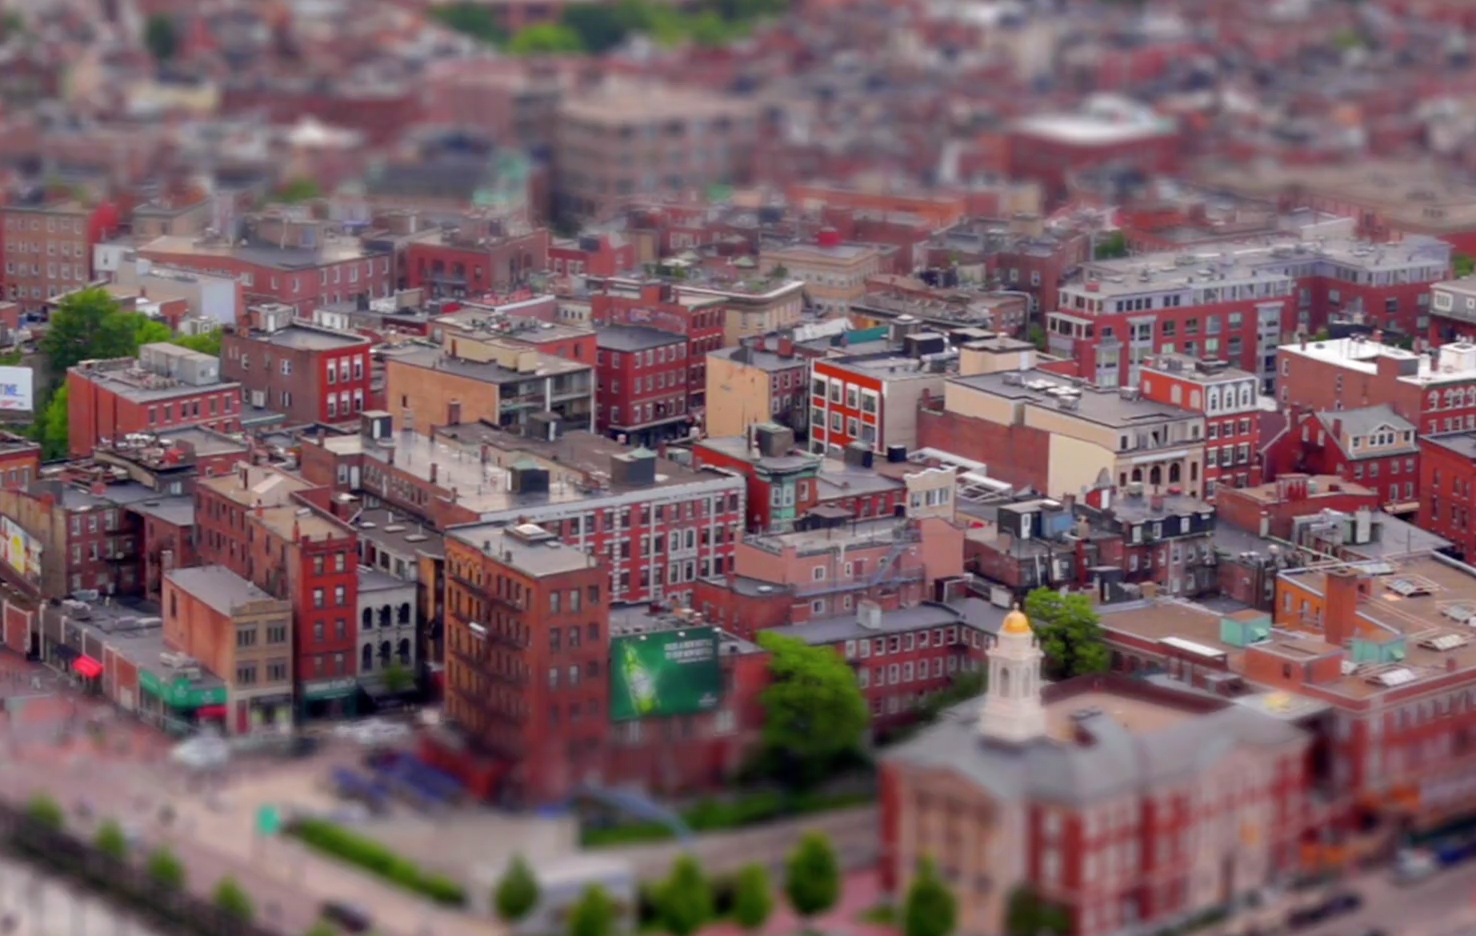 Boston like you have never seen it before